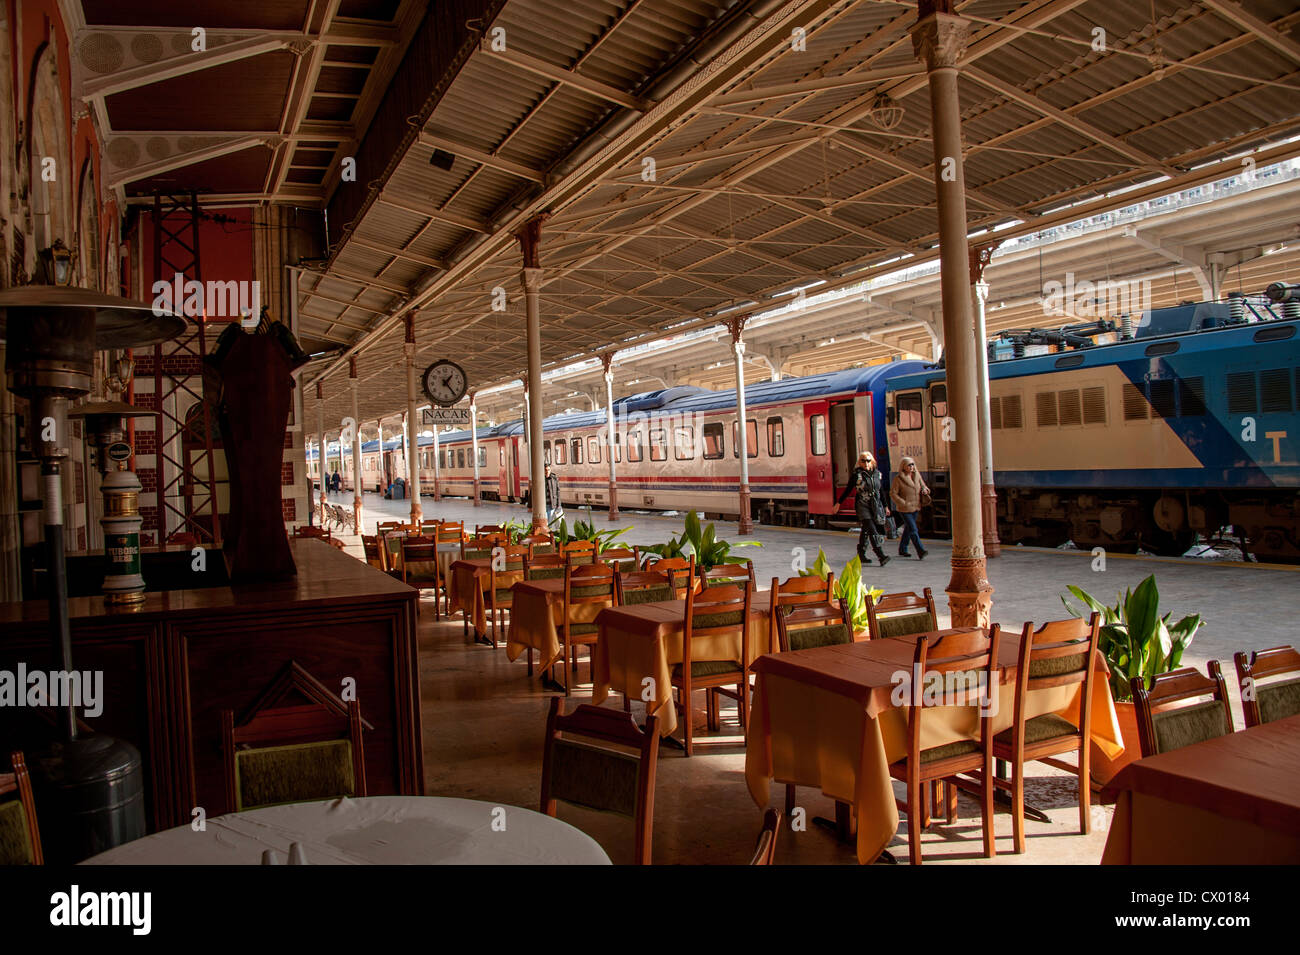 World famous Sirkeci station the terminal for the Oriental Express in Istanbul - Stock Image